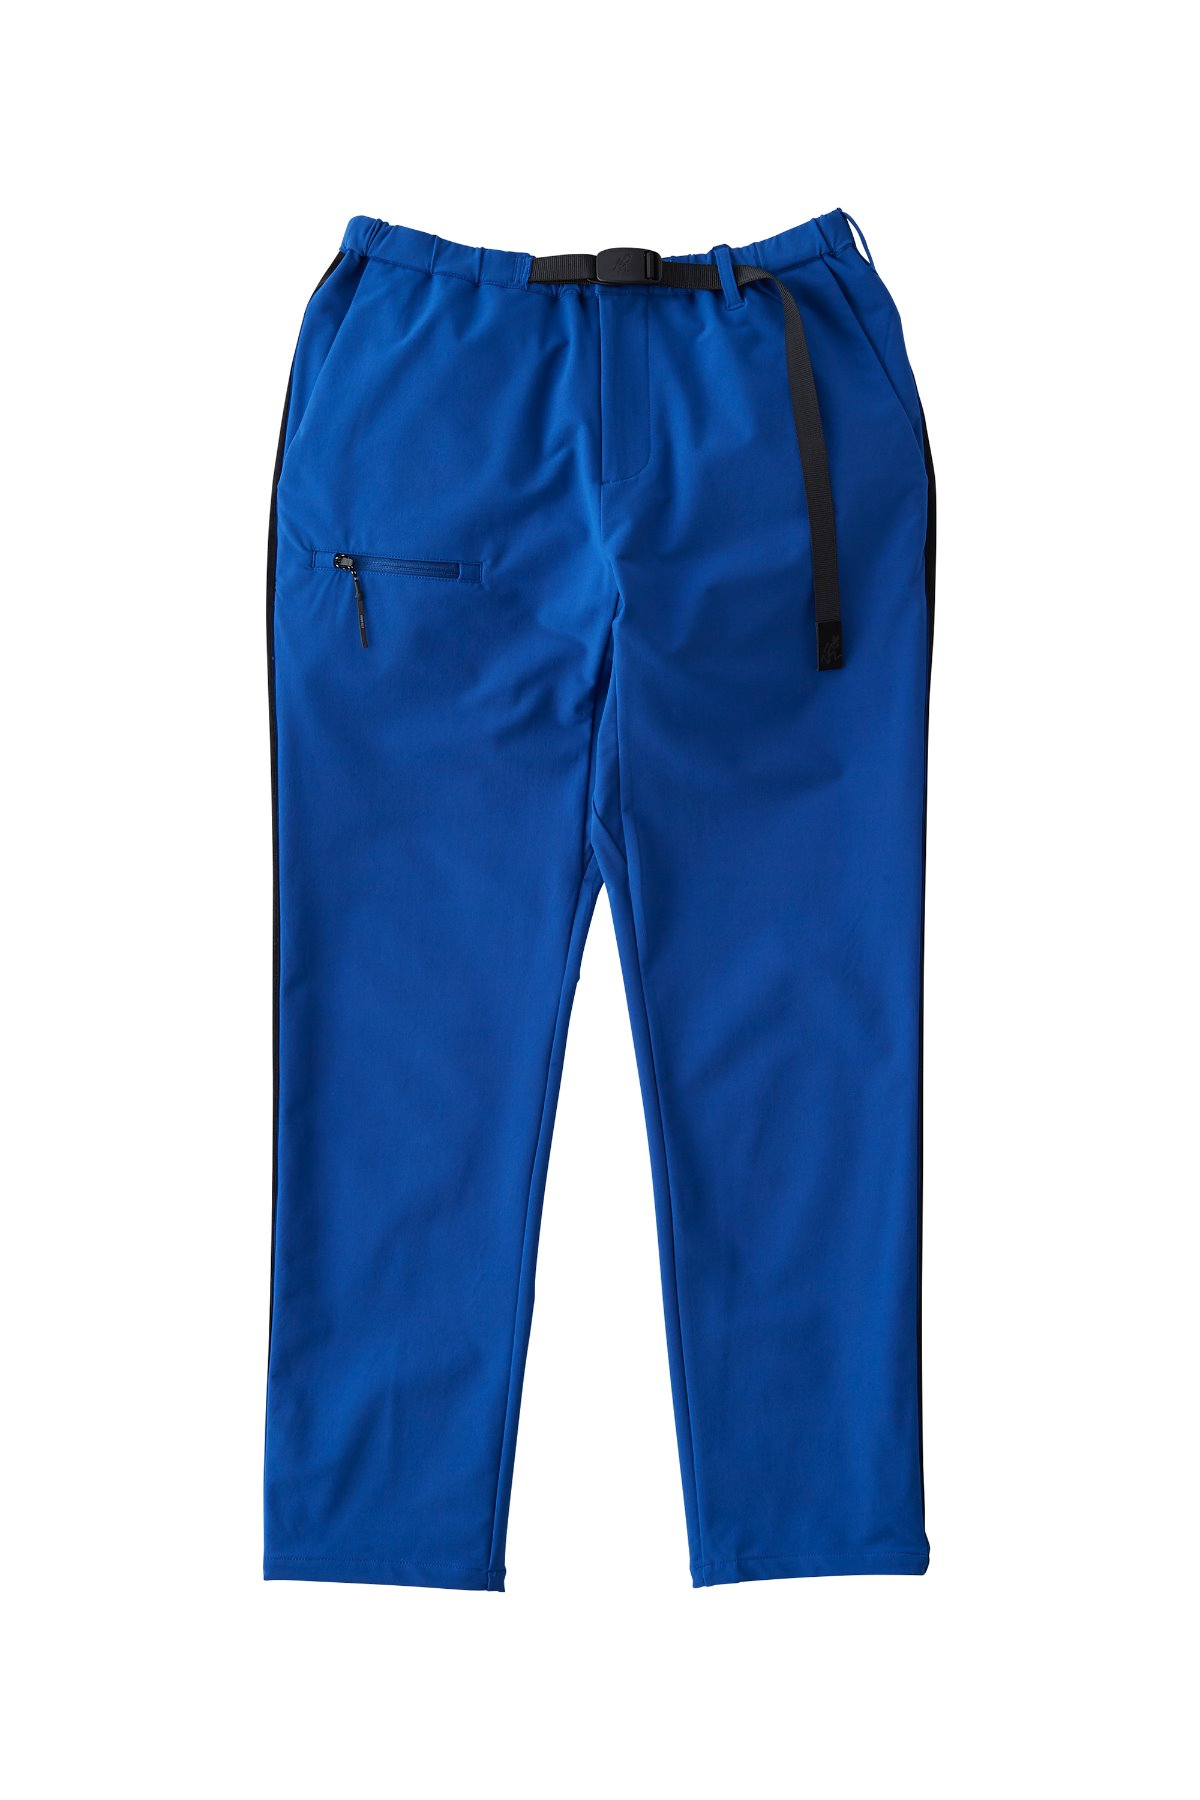 STORMFLEECE LINE PANTS BLUE